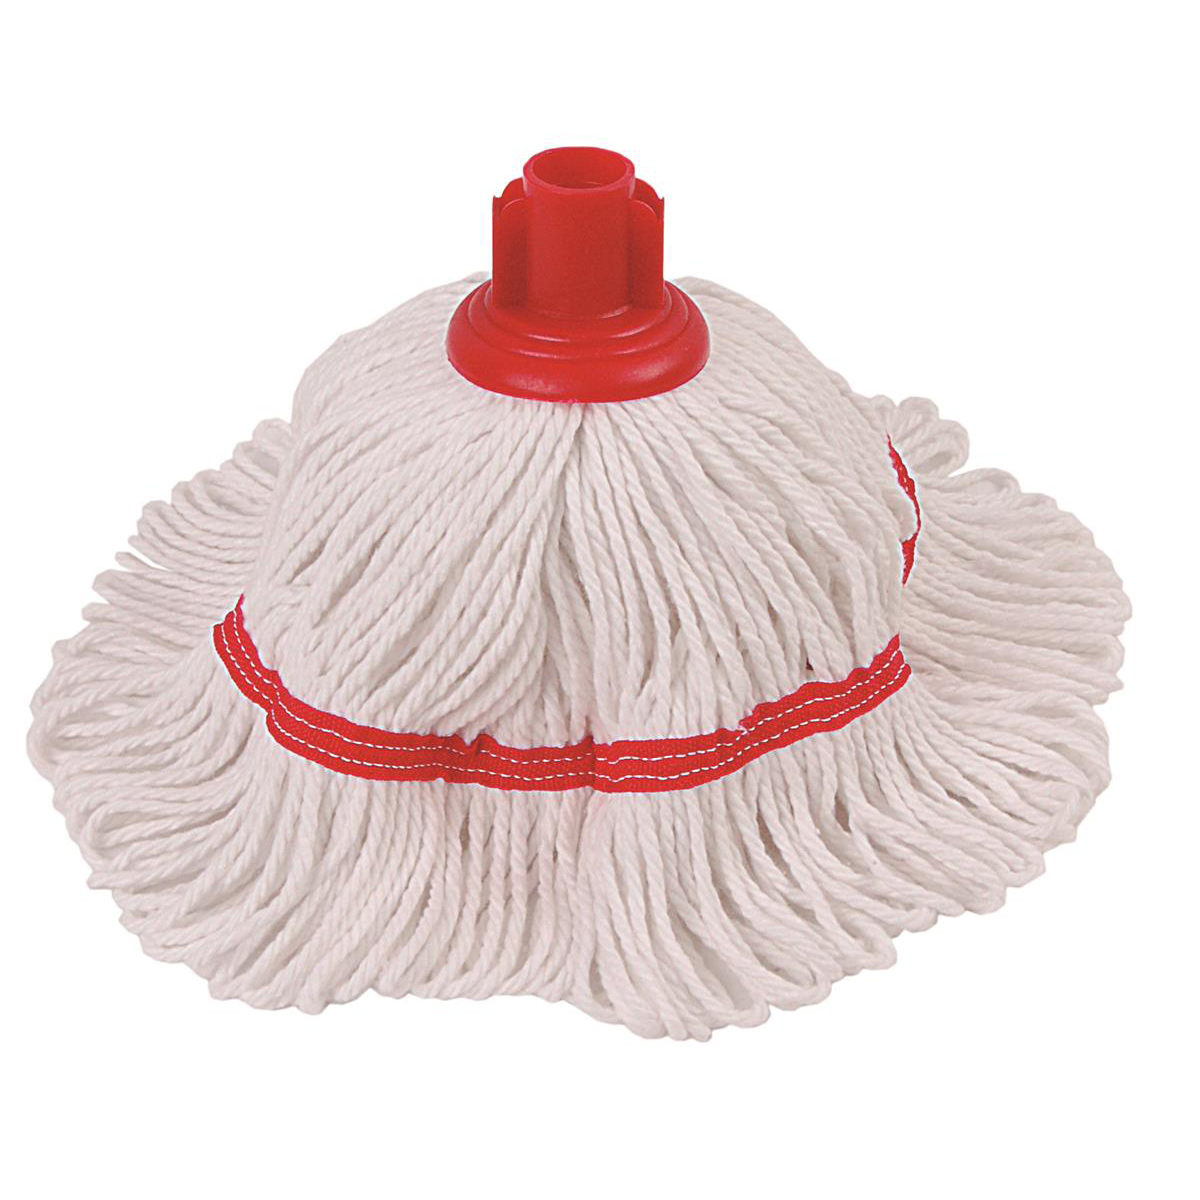 Robert Scott & Sons Hygiemix T1 Socket Cotton & Synthetic Colour-coded Mop 200g Red Ref MHH200R